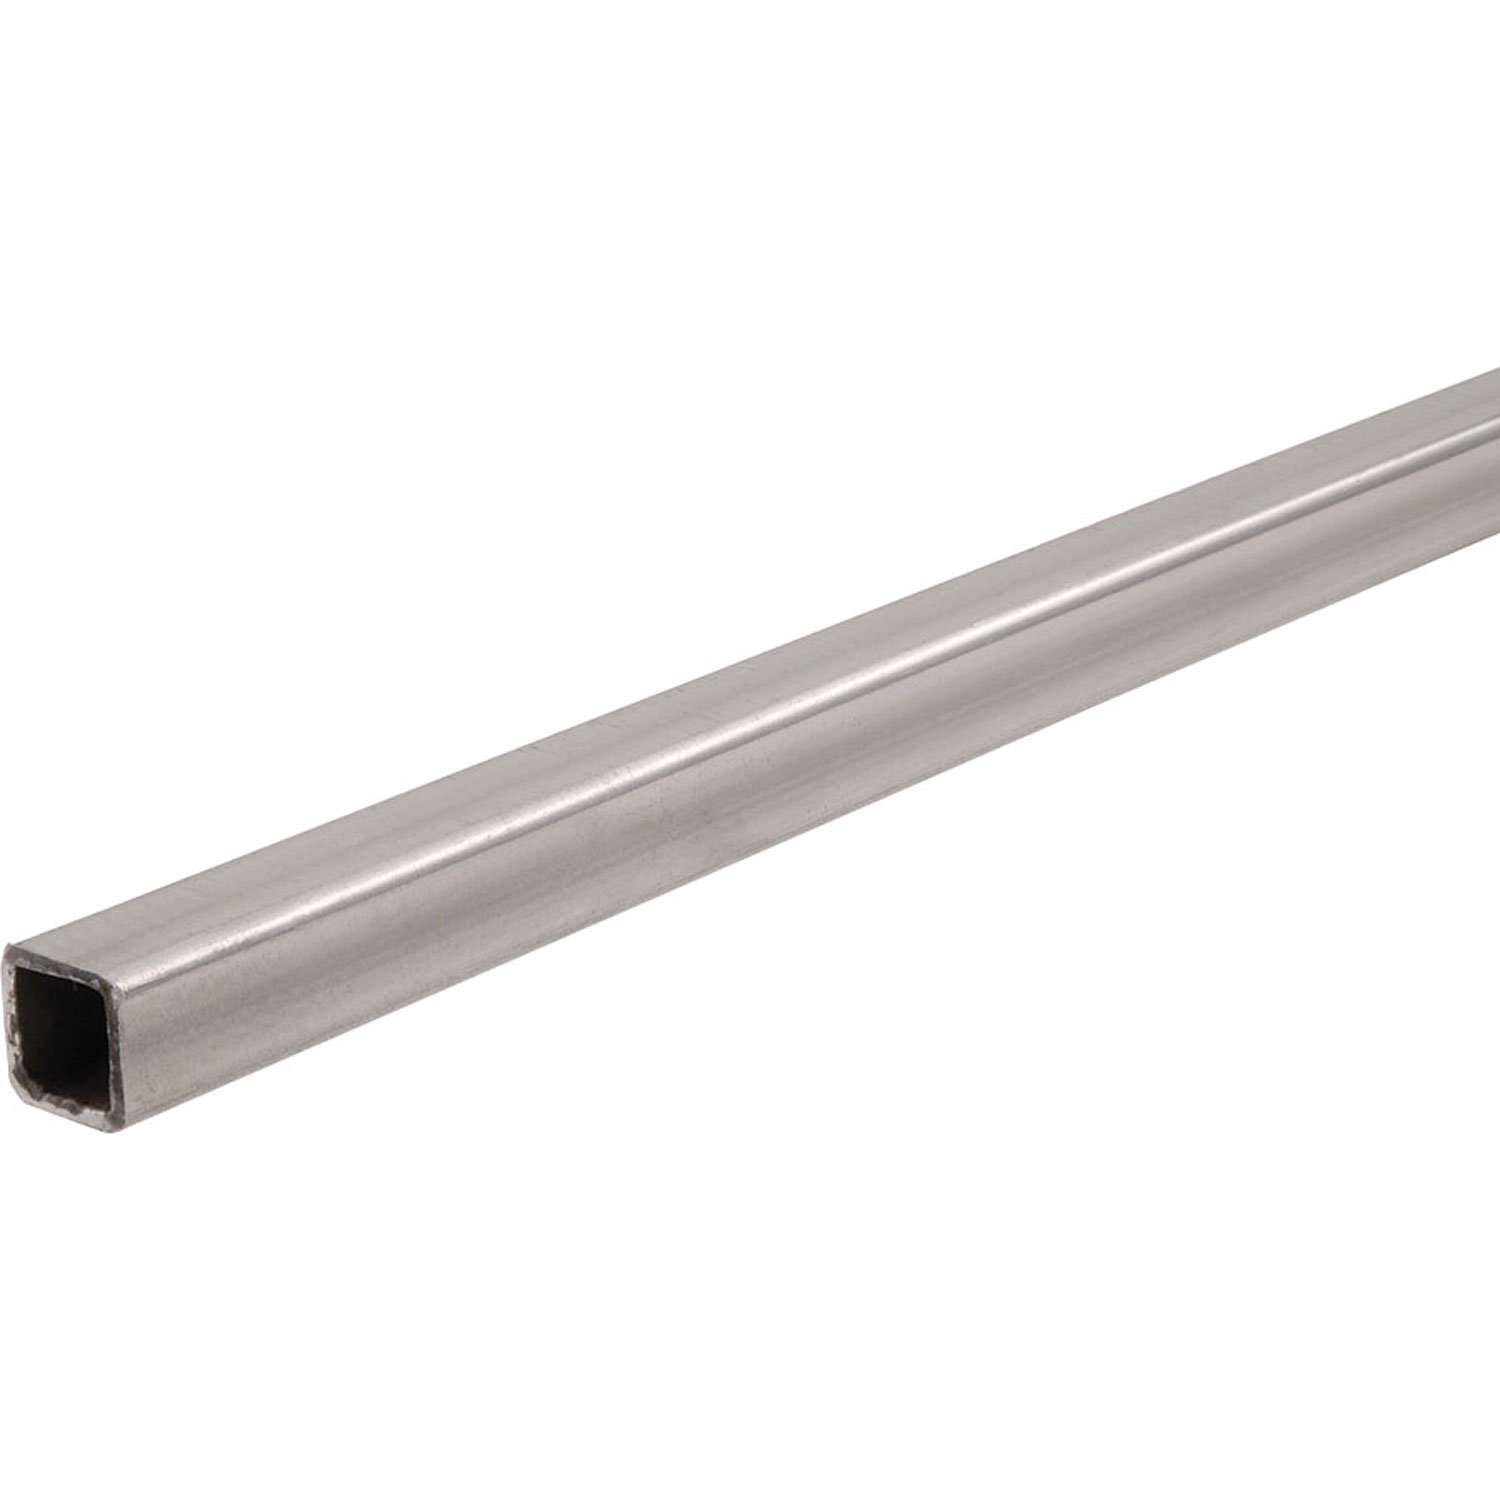 Unpolished (Mill) 1008-1010 Steel Square Tube, 1'' Height, 0.083'' Wall Thickness, 8' Length by Small Parts